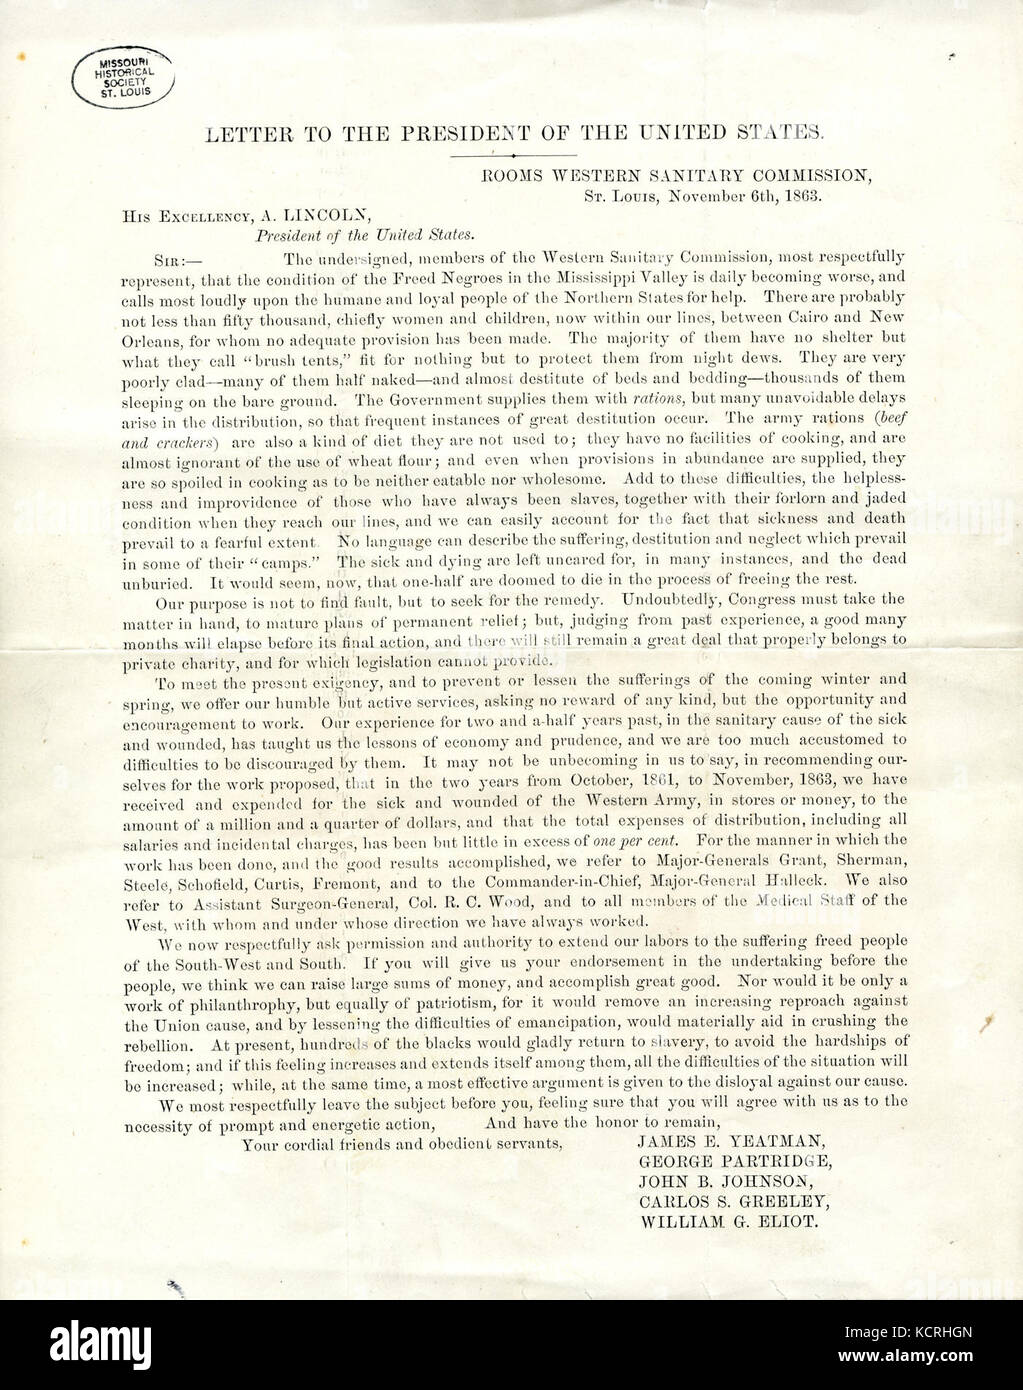 Circular letter of the western sanitary commission st louis to circular letter of the western sanitary commission st louis to president abraham lincoln november 6 1863 thecheapjerseys Image collections